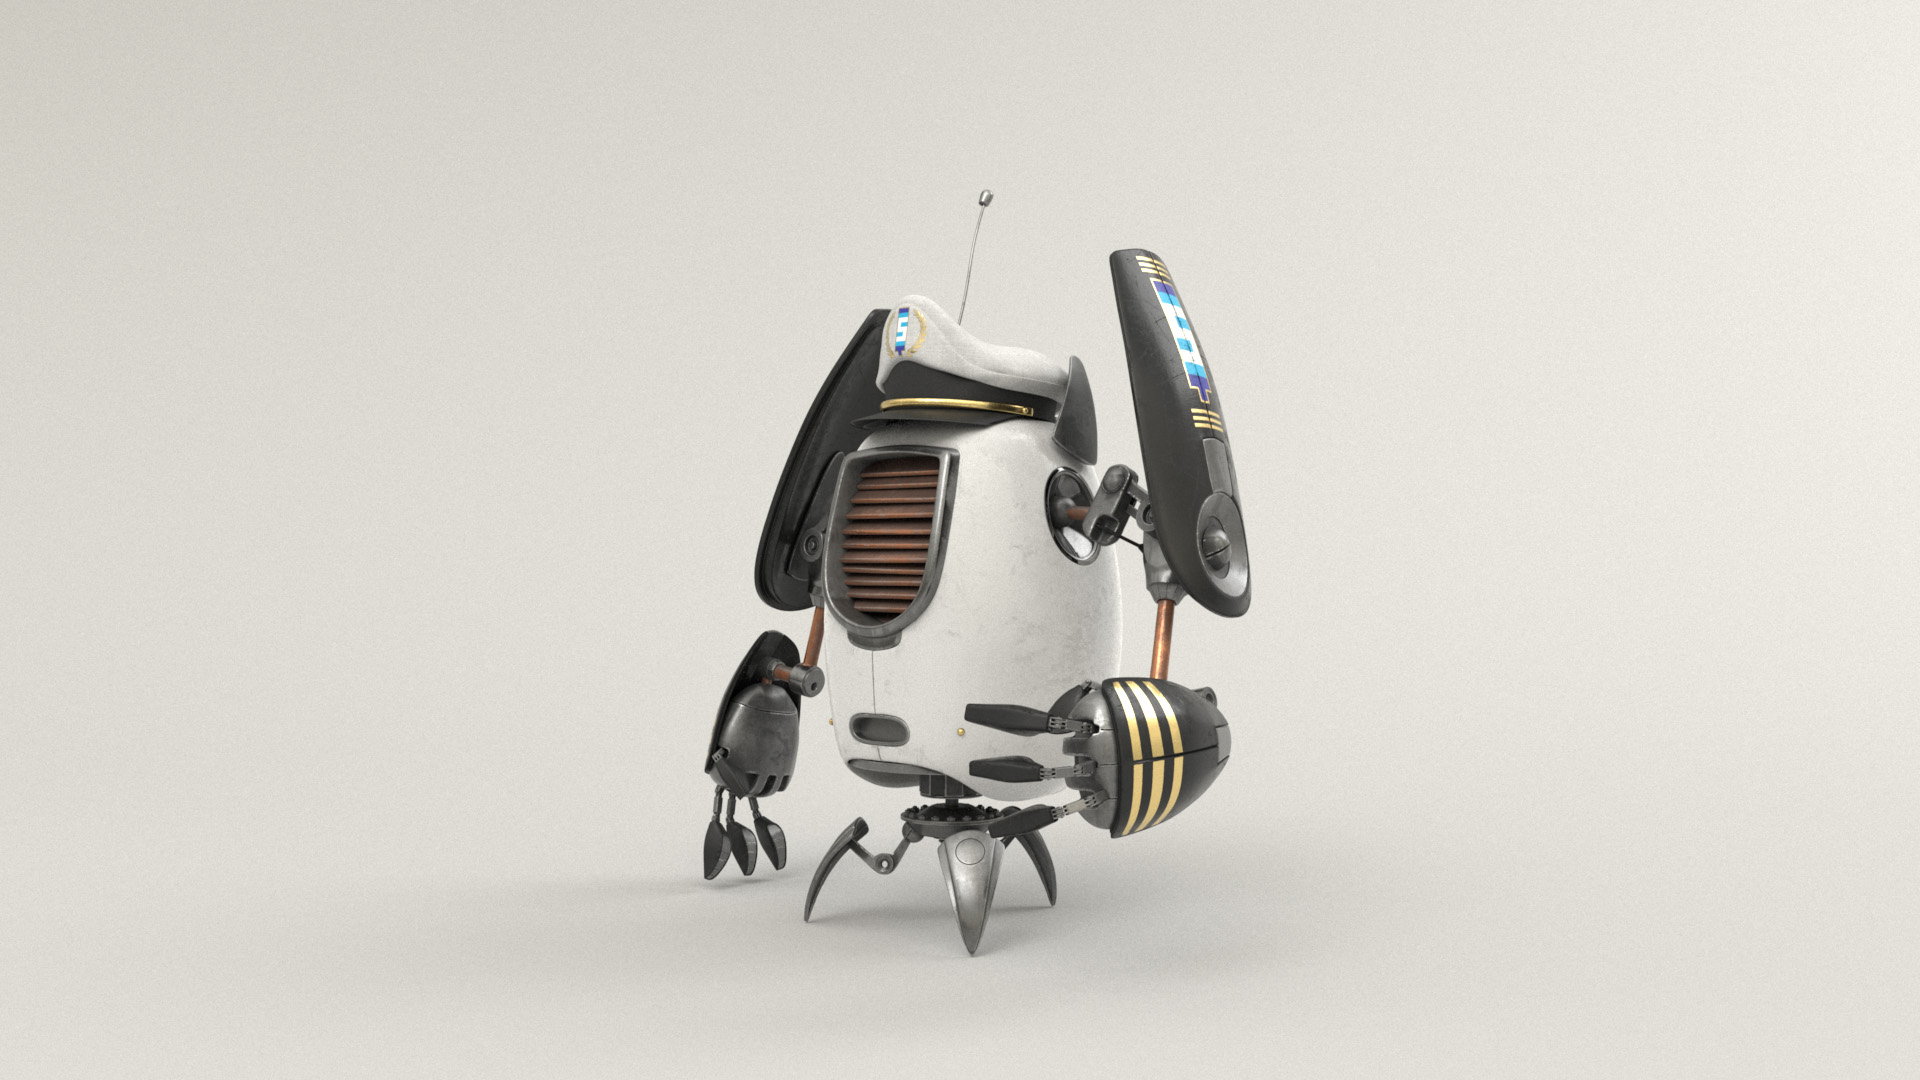 Figure 21: Captain robot with a white and black and gold color scheme and an even fancier hat.